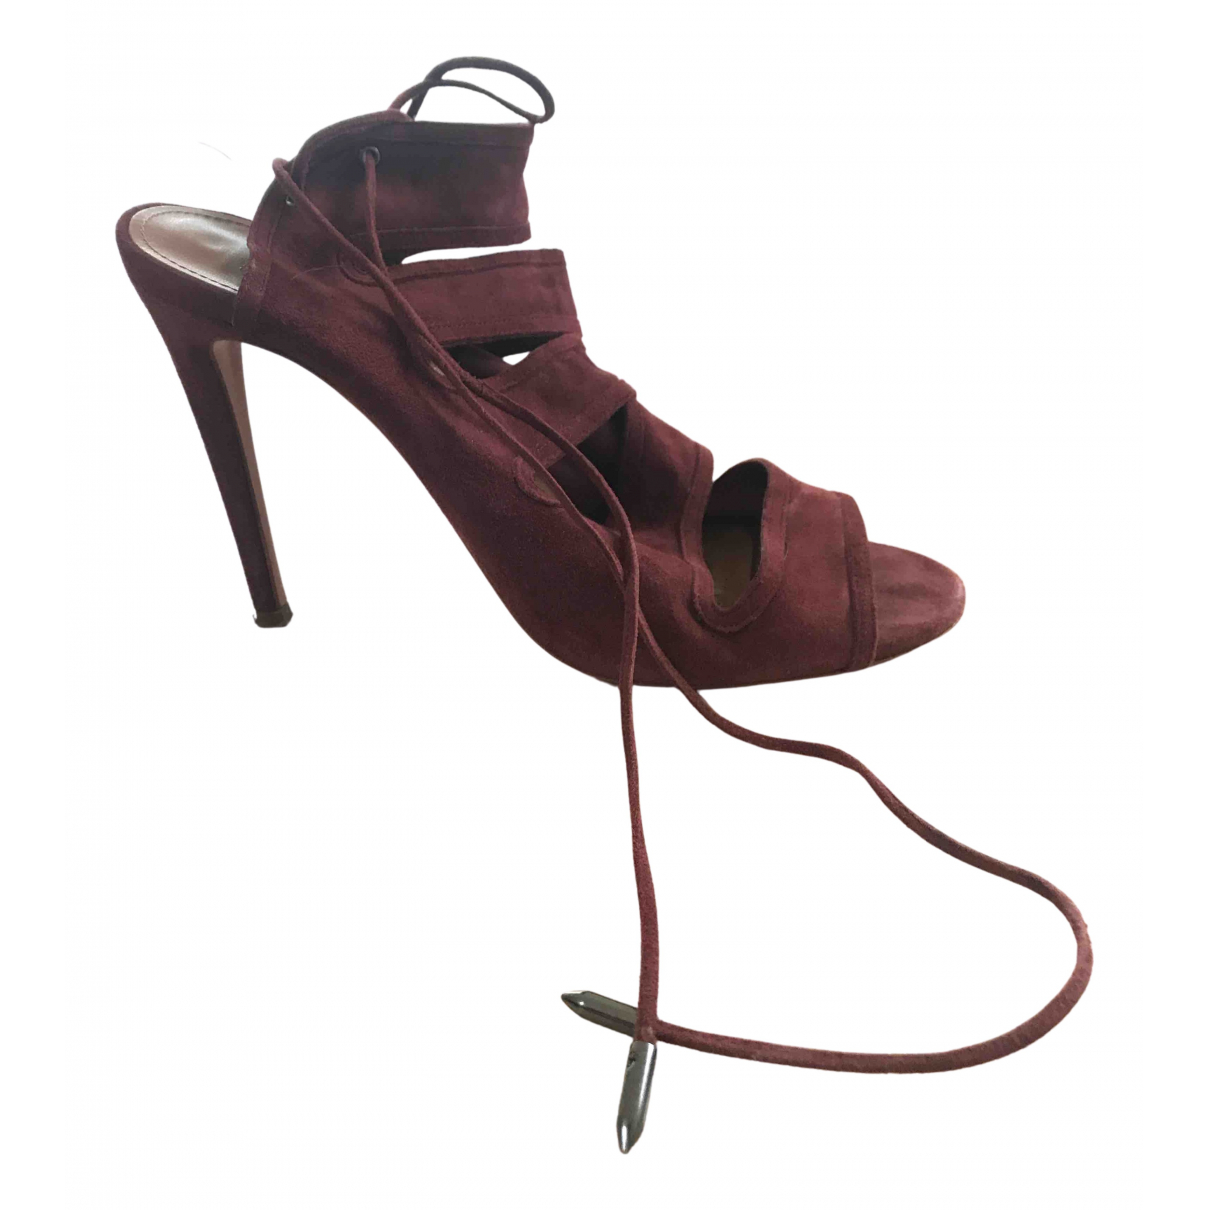 Aquazzura Sexy Thing Sandalen in  Bordeauxrot Veloursleder